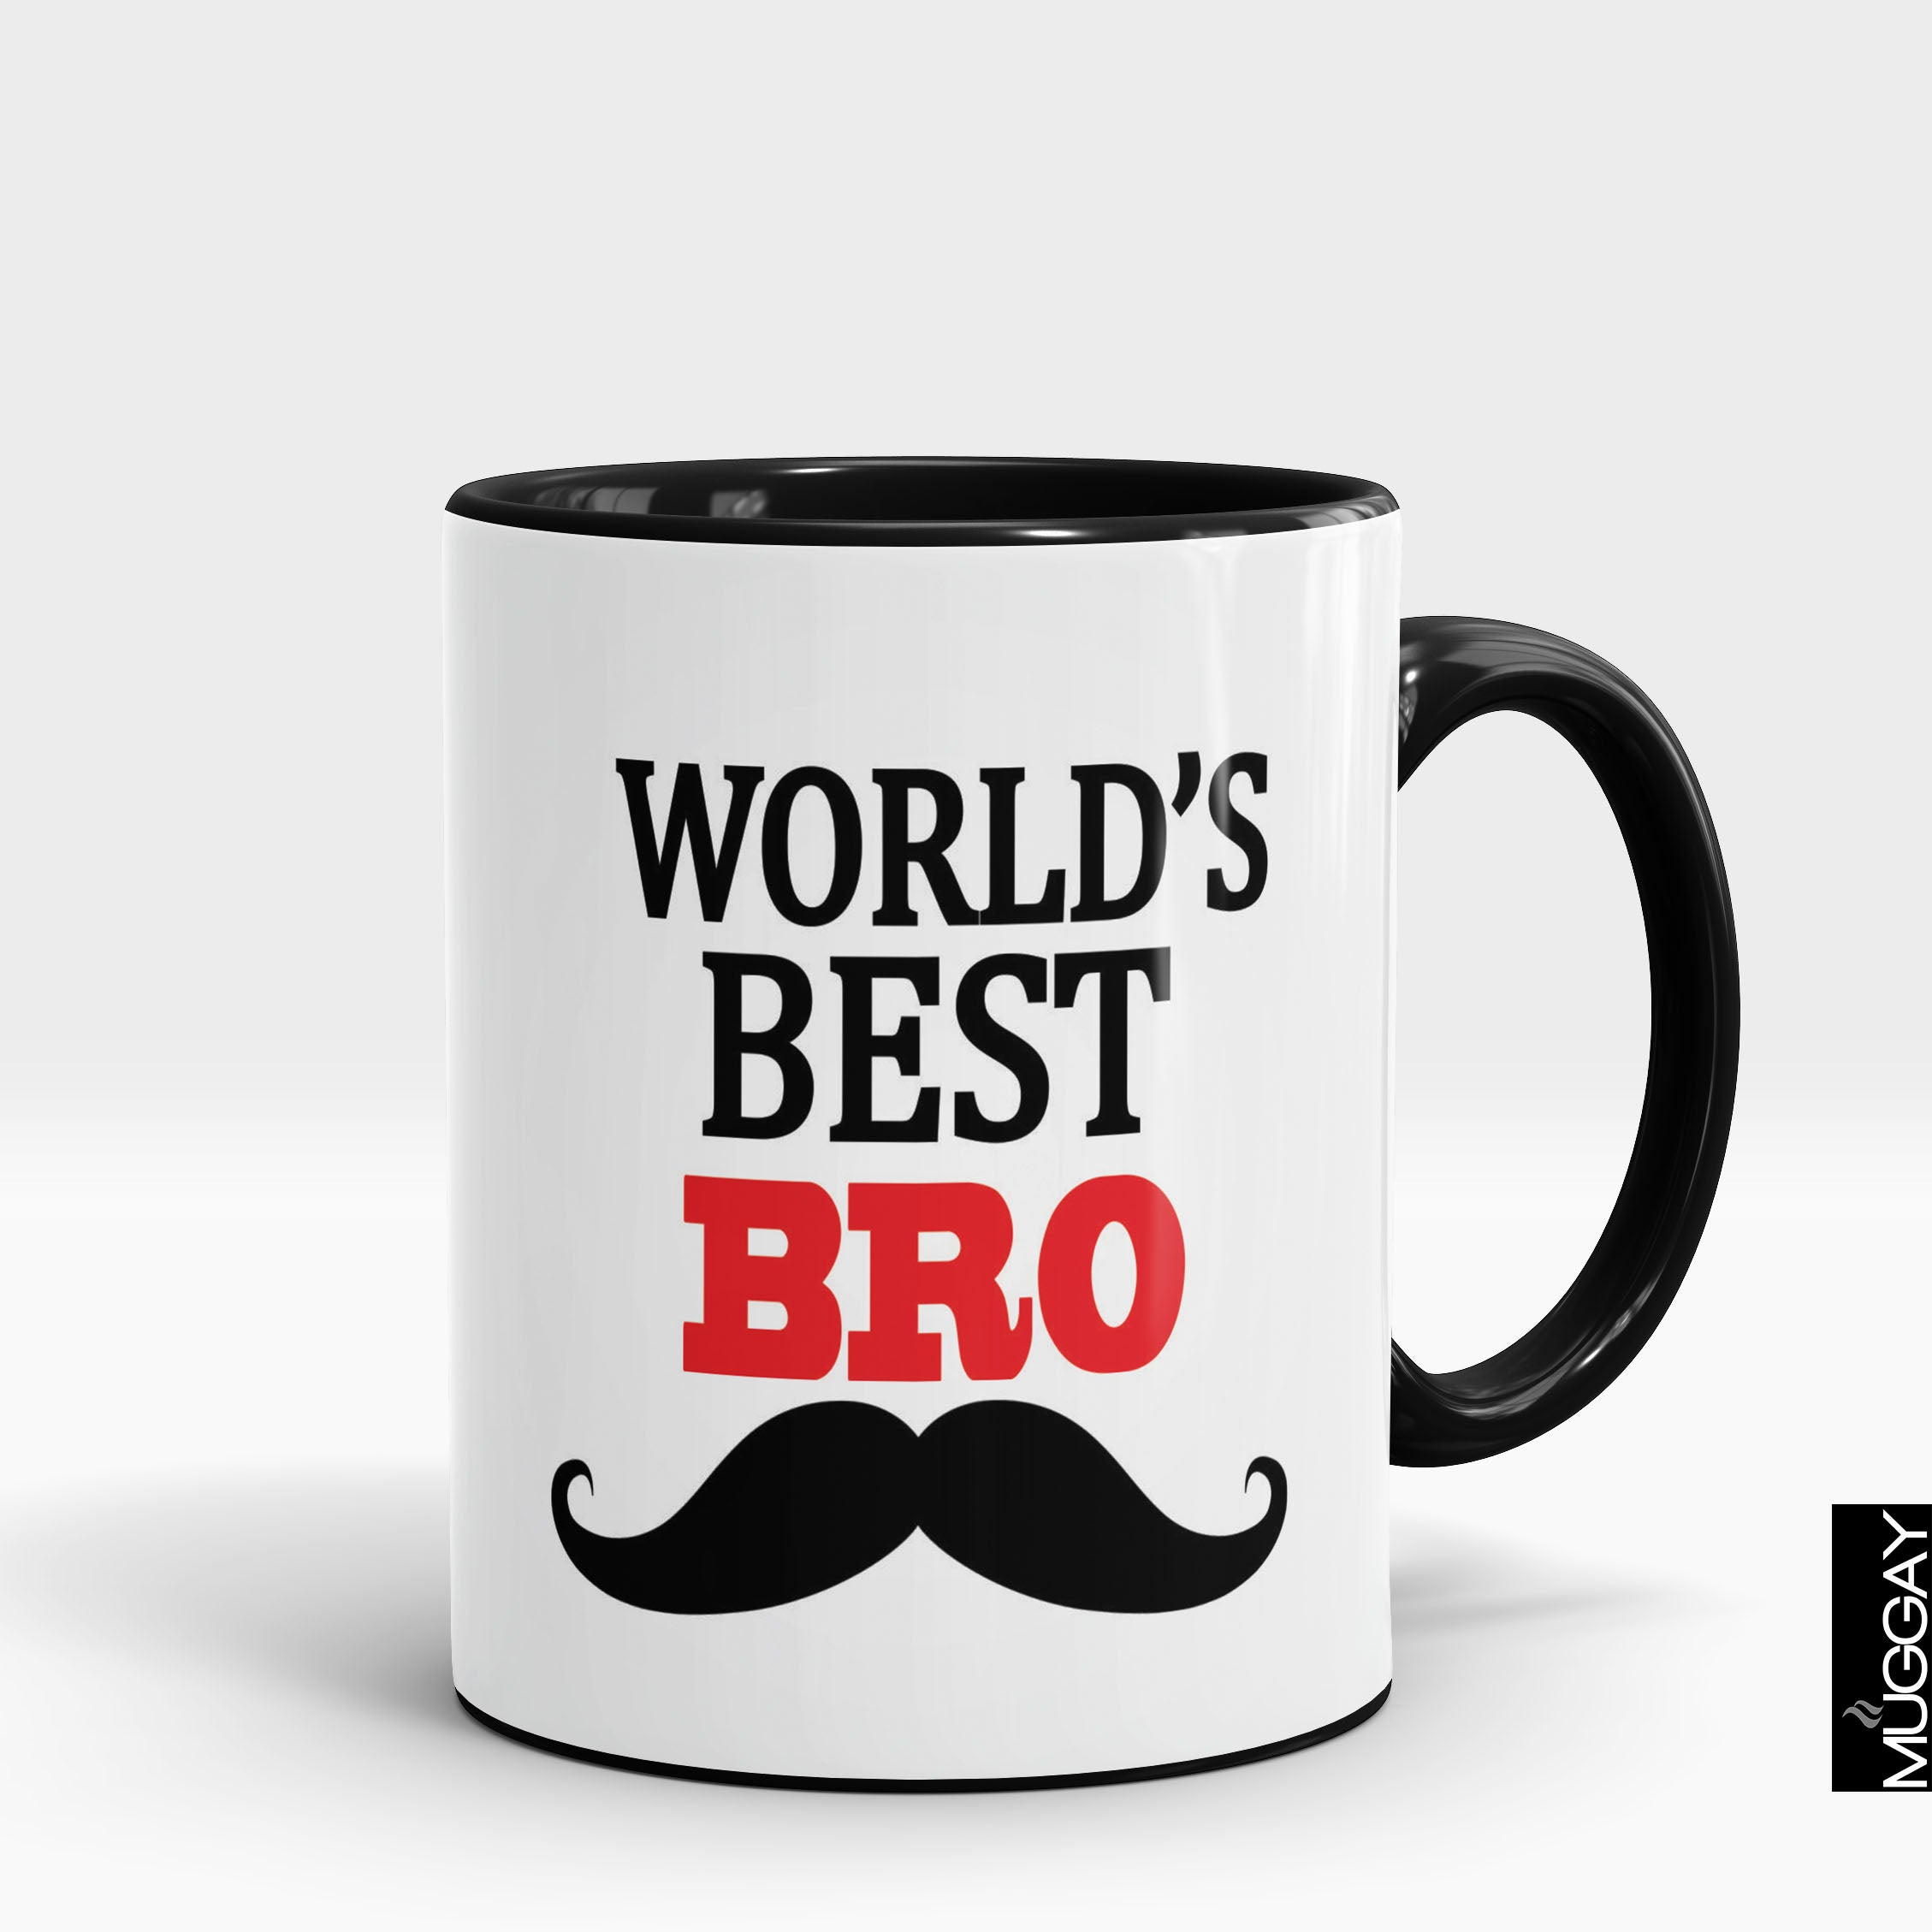 Bro2 - Muggay.com - Mugs - Printing shop - truck Art mugs - Mug printing - Customized printing - Digital printing - Muggay